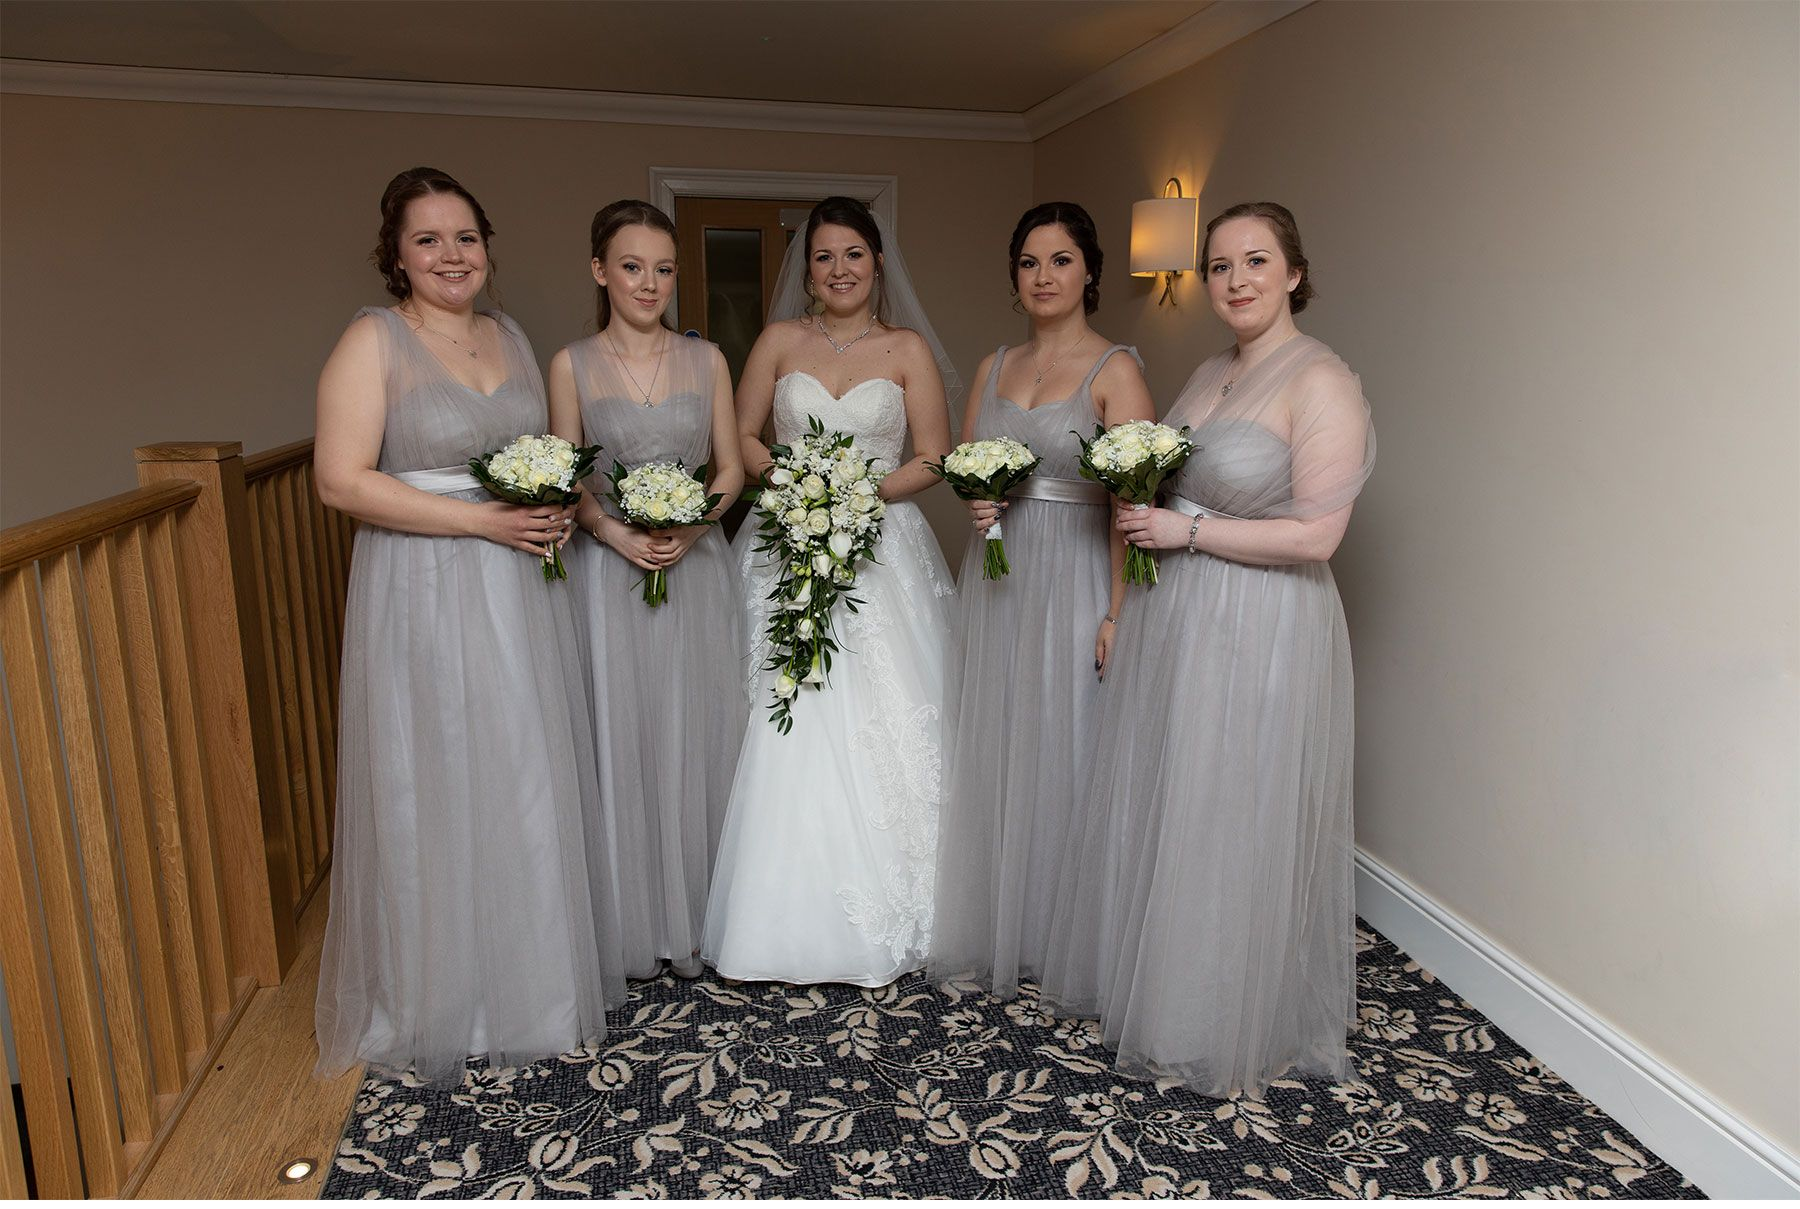 Bride and bridesmaids ready to go down stairs